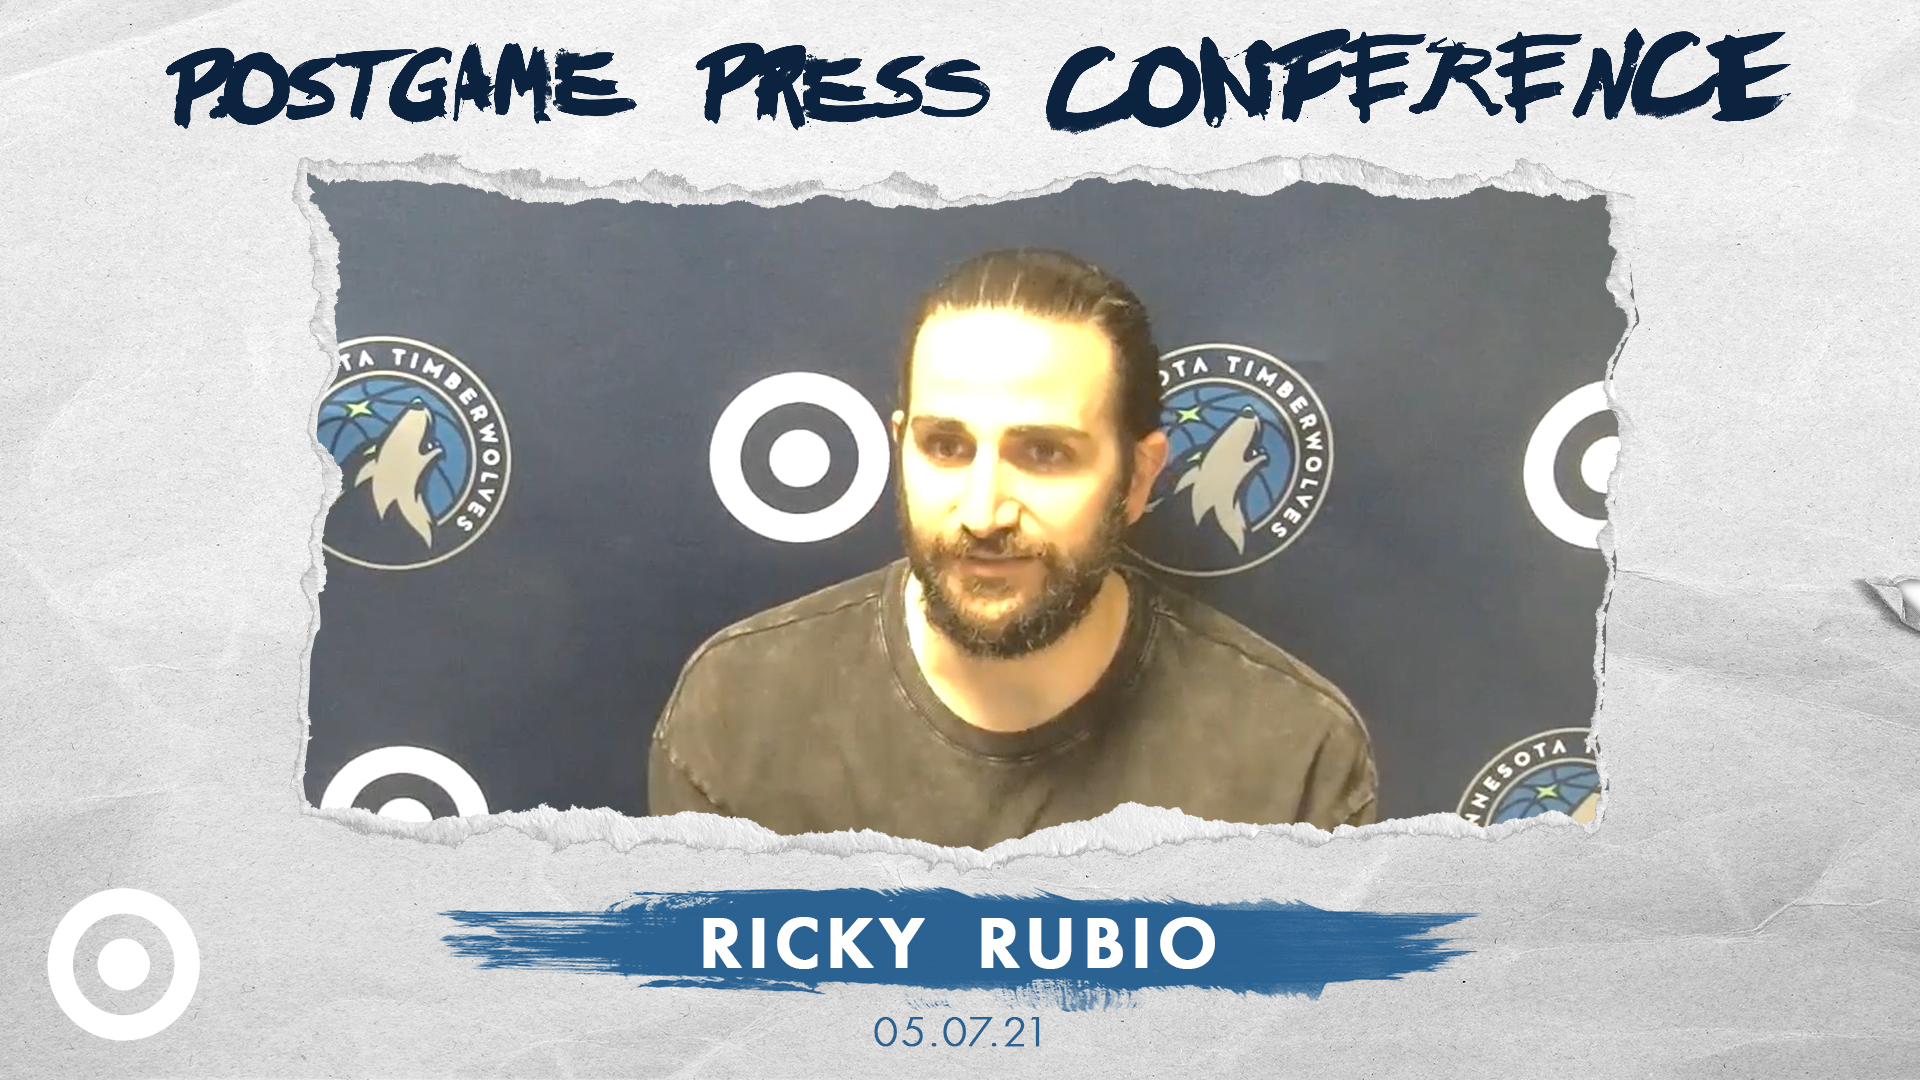 Ricky Rubio Postgame Press Conference - May 7, 2021